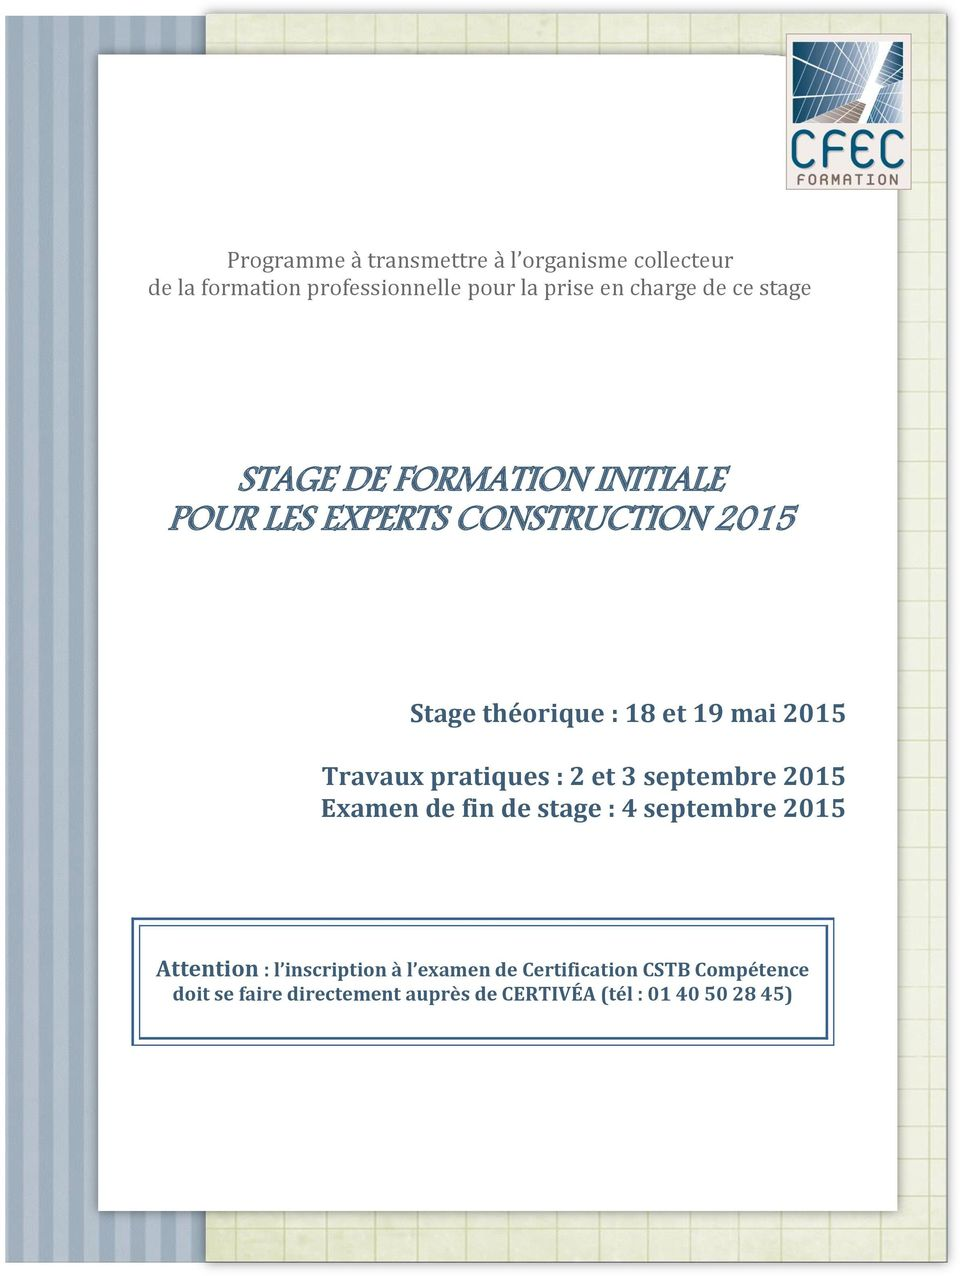 18 et 19 mai 2015 Travaux pratiques : 2 et 3 septembre 2015 Examen de fin de stage : 4 septembre 2015 Attention : l